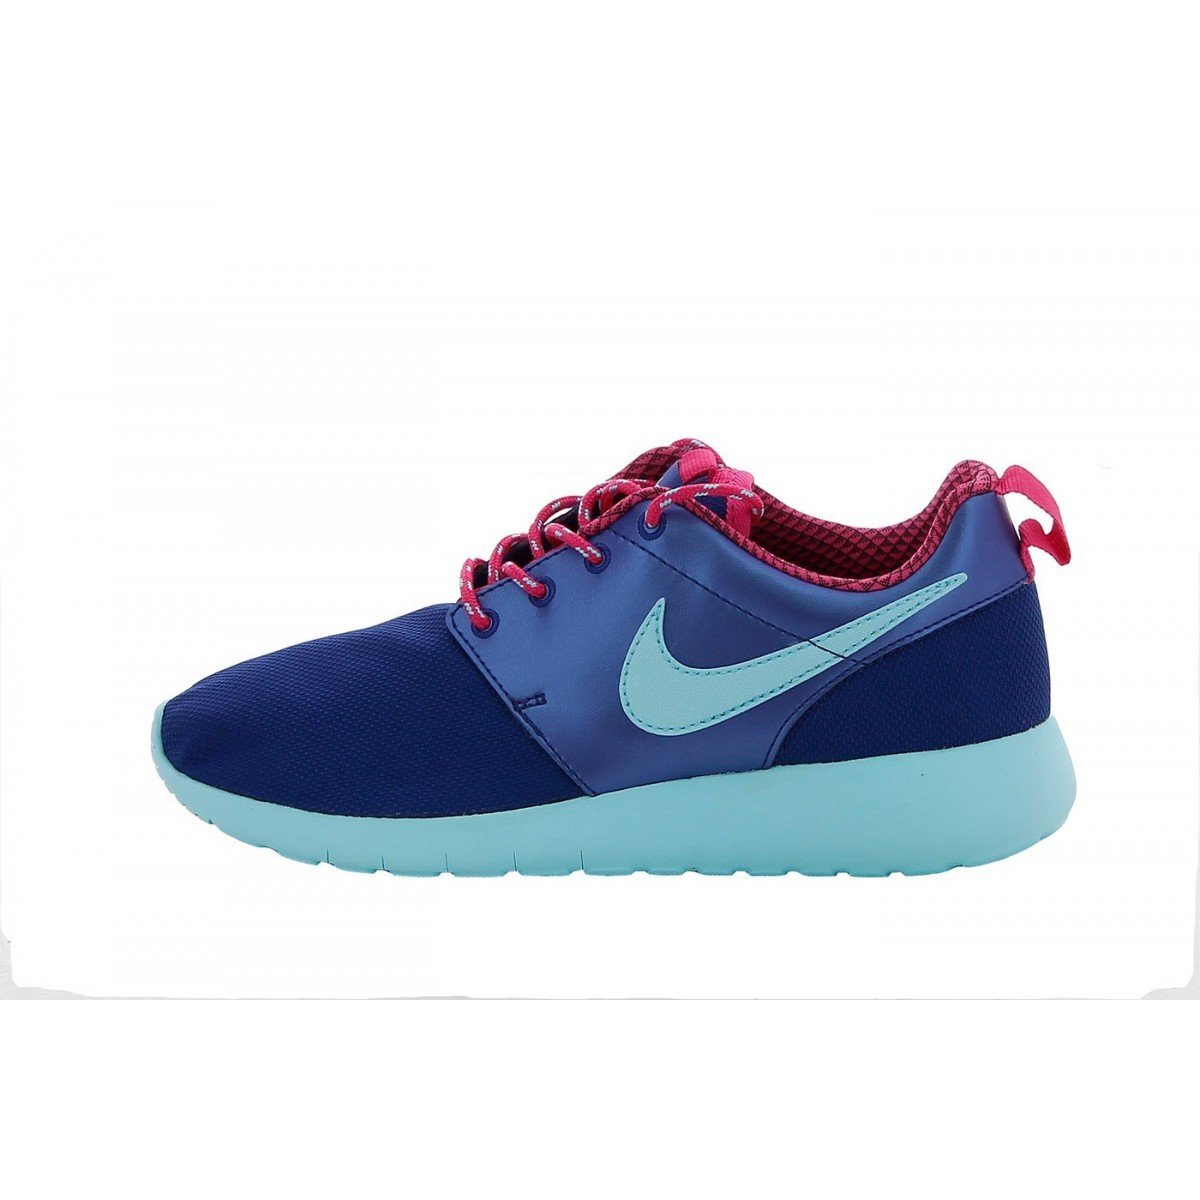 NIKE Roshe One GS - 599729406 - Color Navy Blue - Size: 6.0